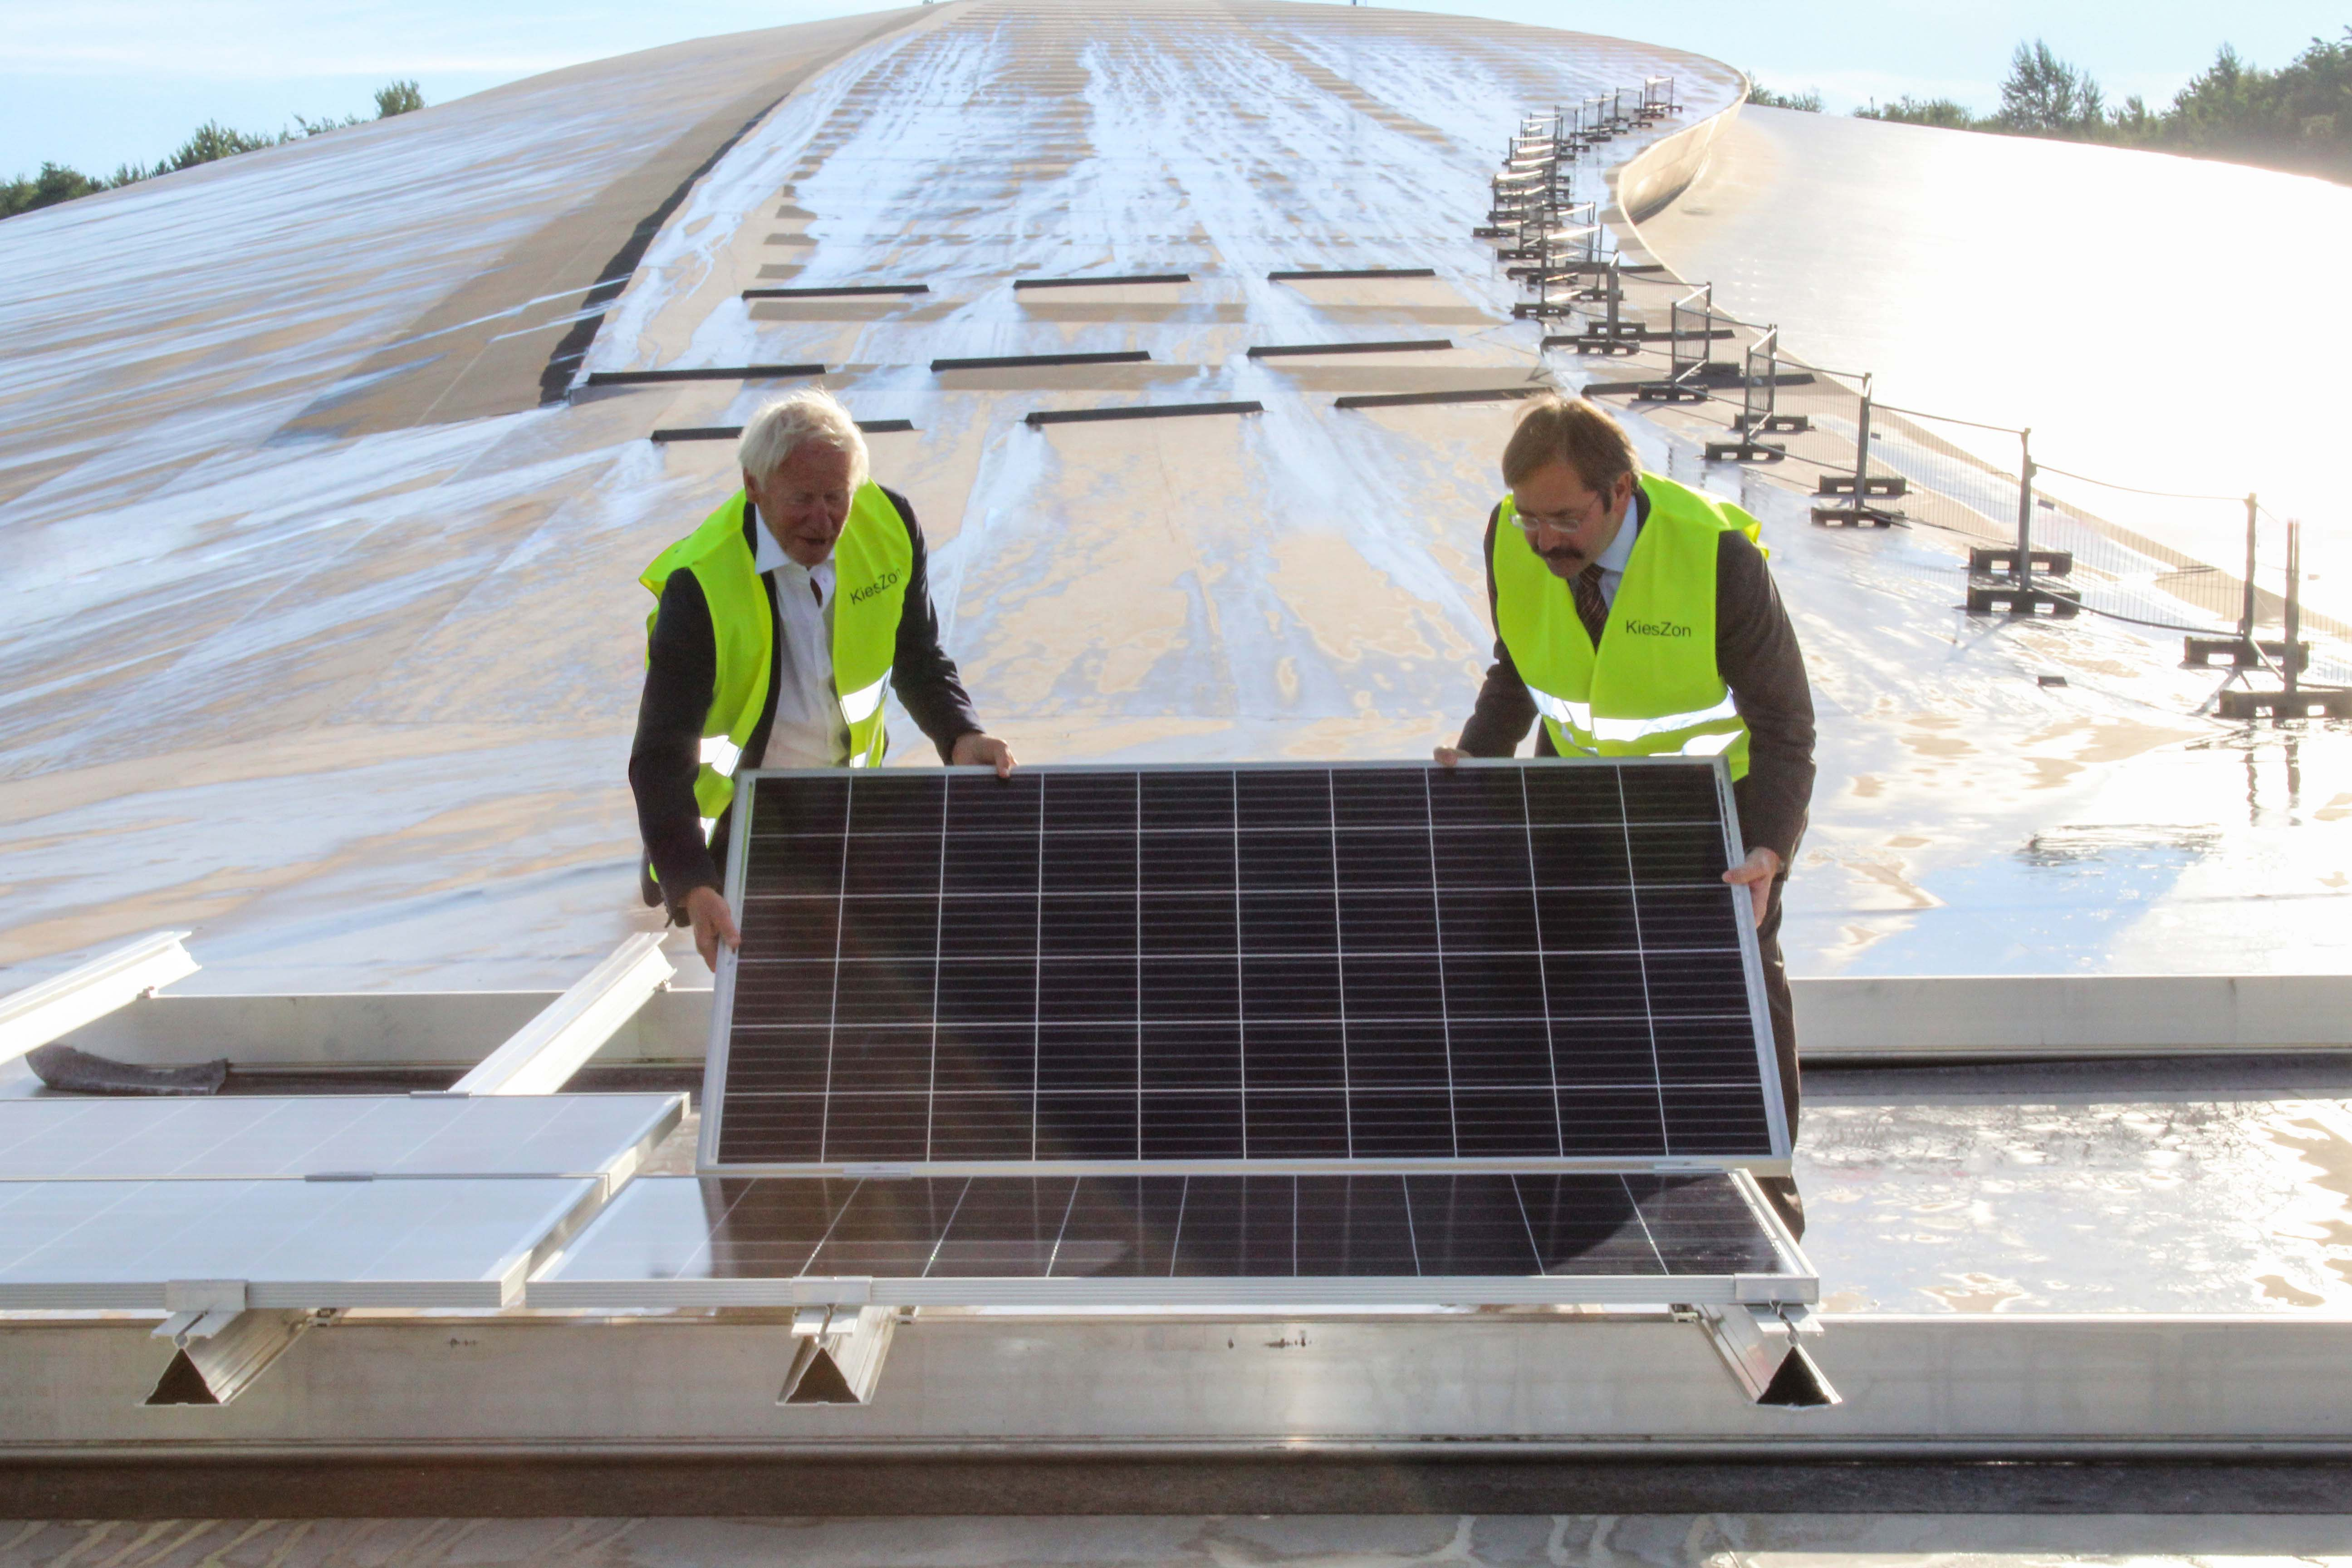 Indoor Snow Centre Installing 1000 Solar Panels To Go Fully Green ...